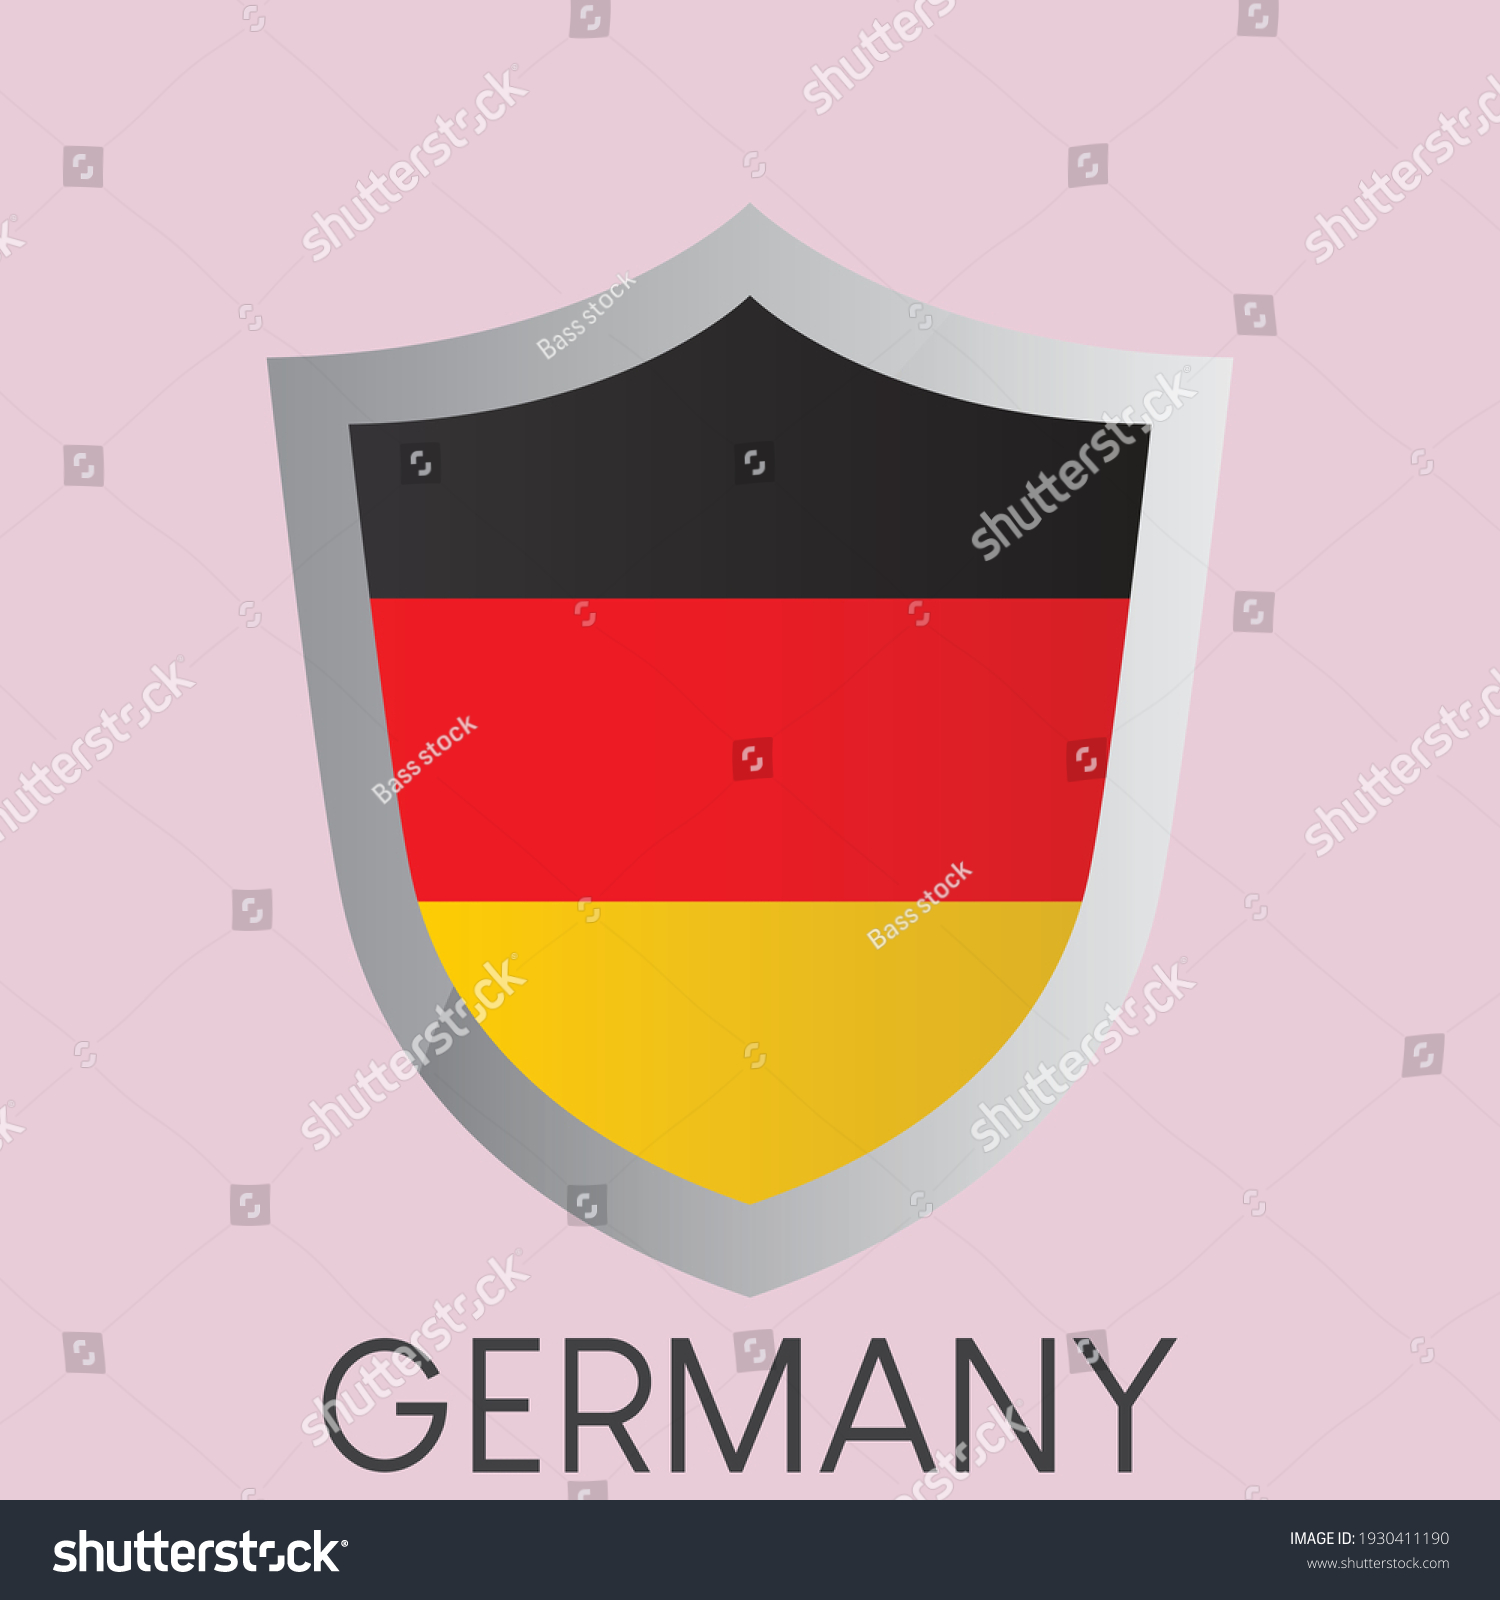 stock-vector-flag-of-germany-shield-icon